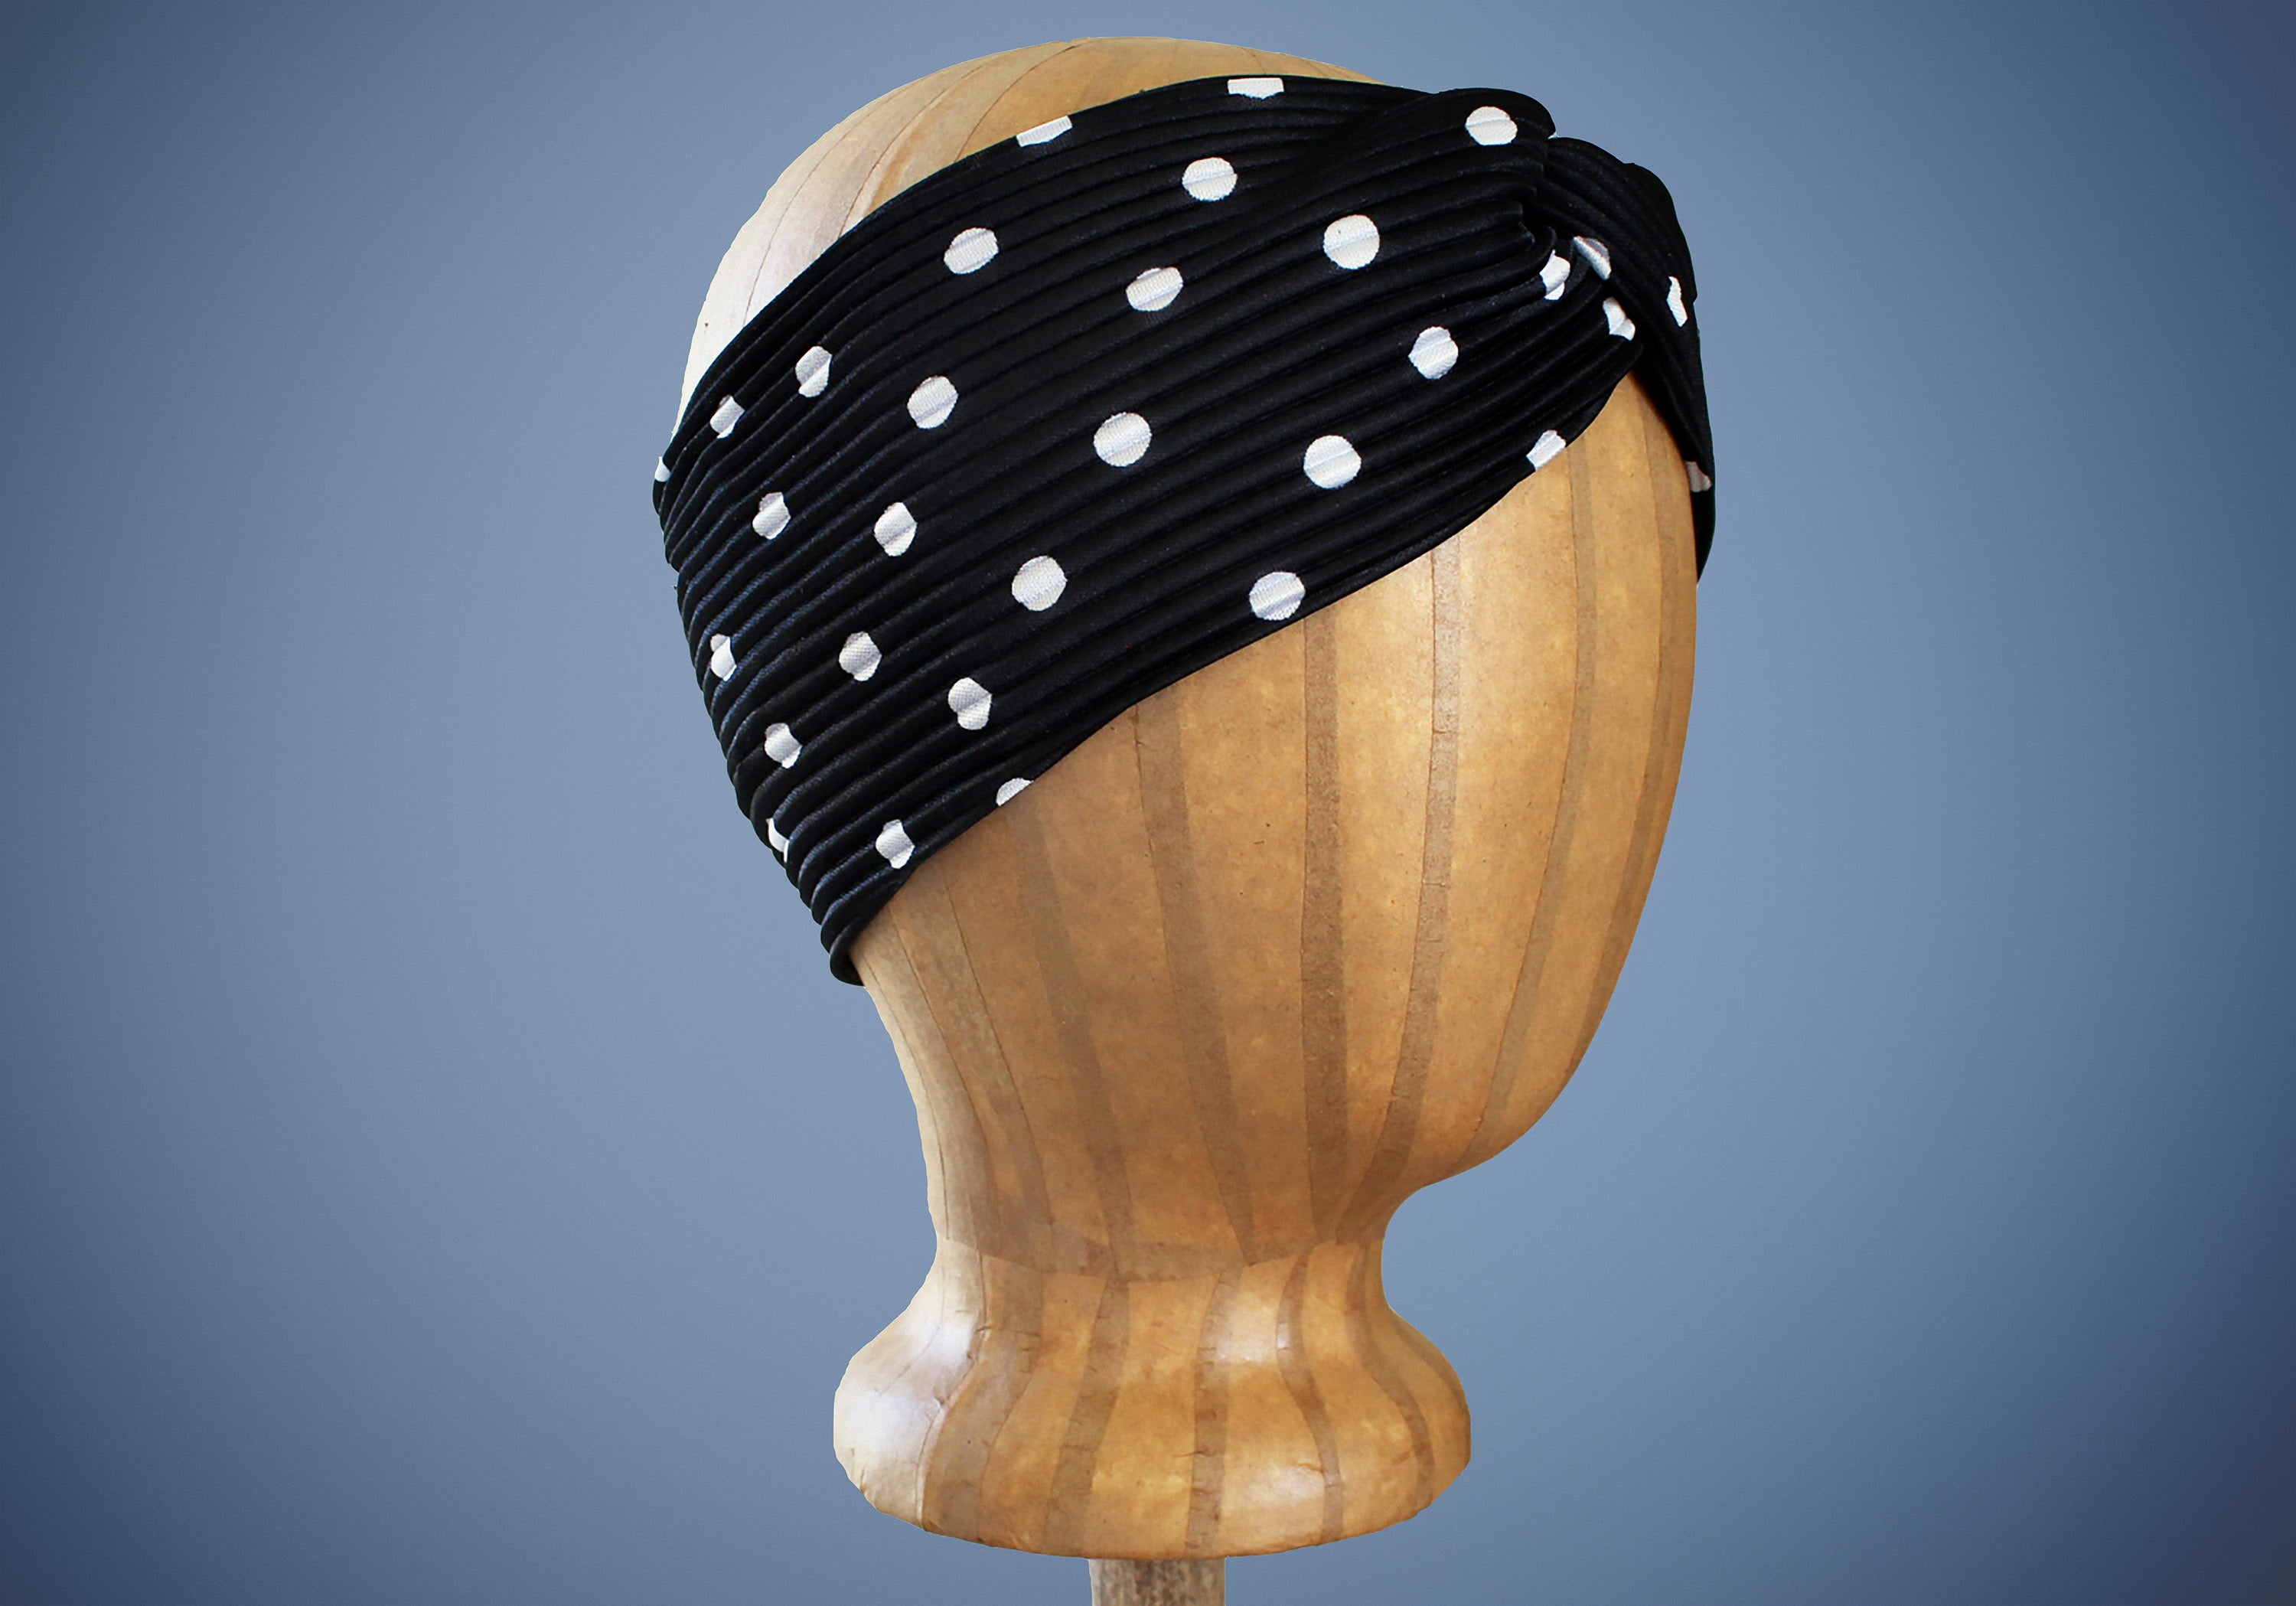 ARKWARD Black and white Polka Dot Turban Headband